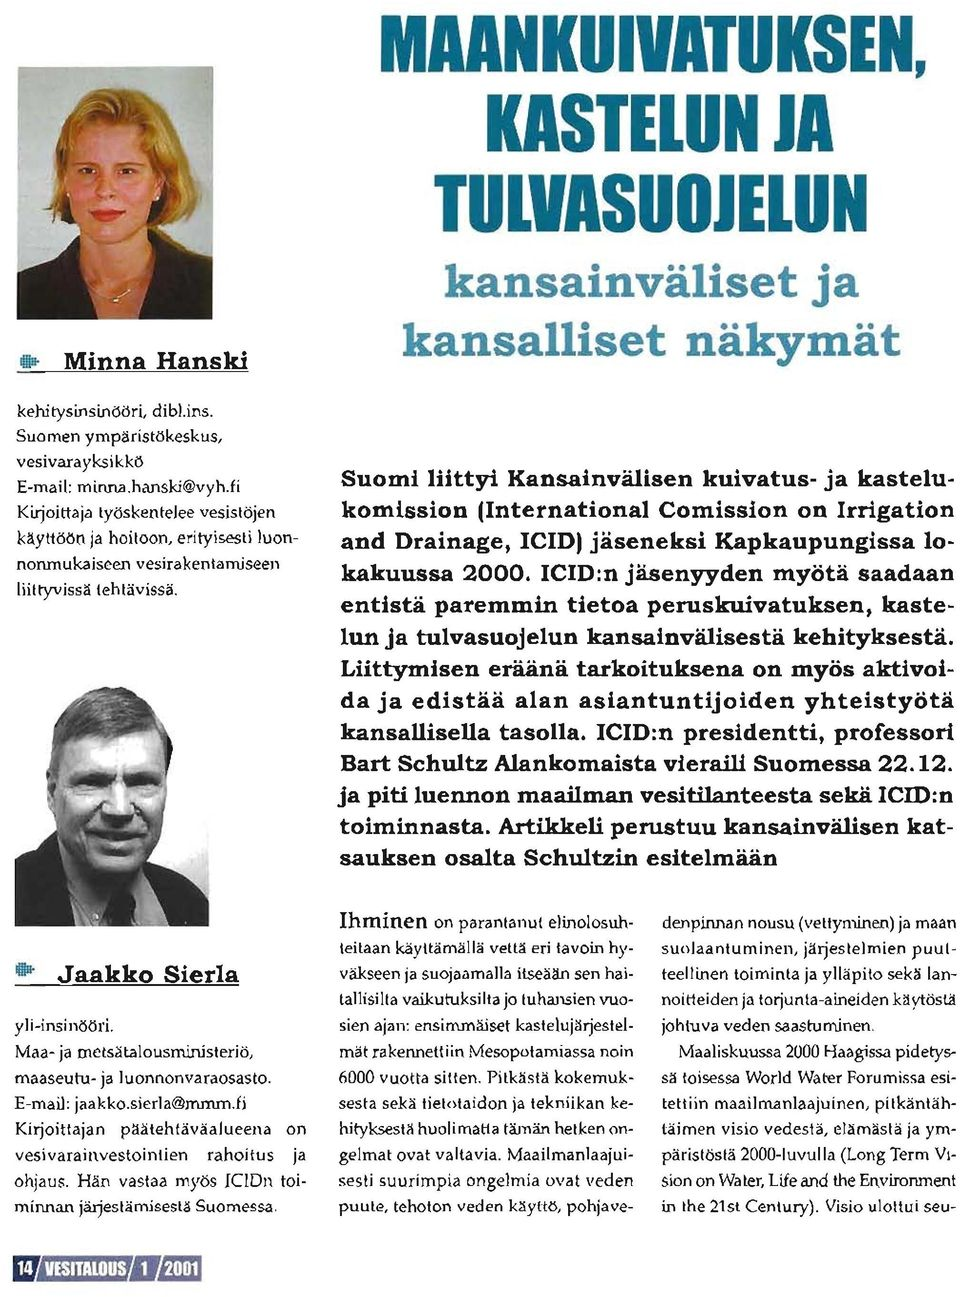 Suomi liittyi Kansainvälisen kuivatus ja kastelukomission (International Comission on Irrigation and Drainage, ICID) jäseneksi Kapkaupungissa lo kakuussa 2000.